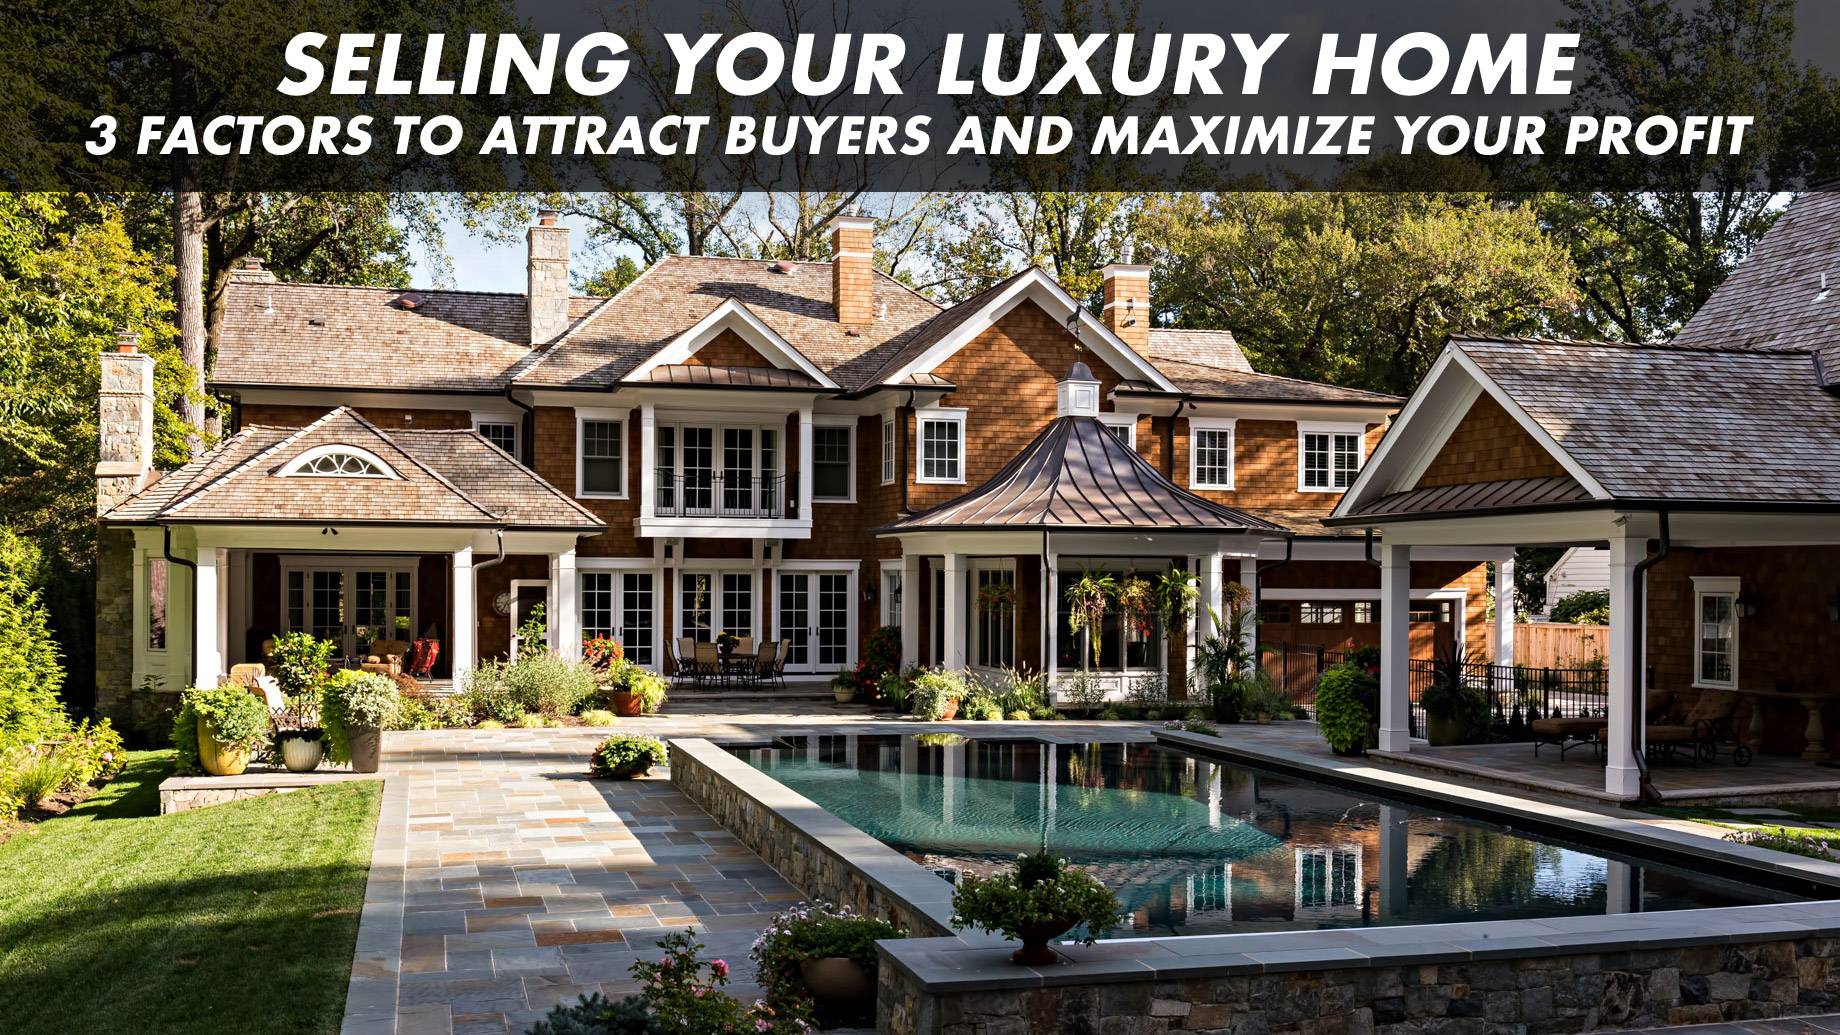 Selling Your Luxury Home - 3 Factors to Attract Buyers and Maximize Your Profit